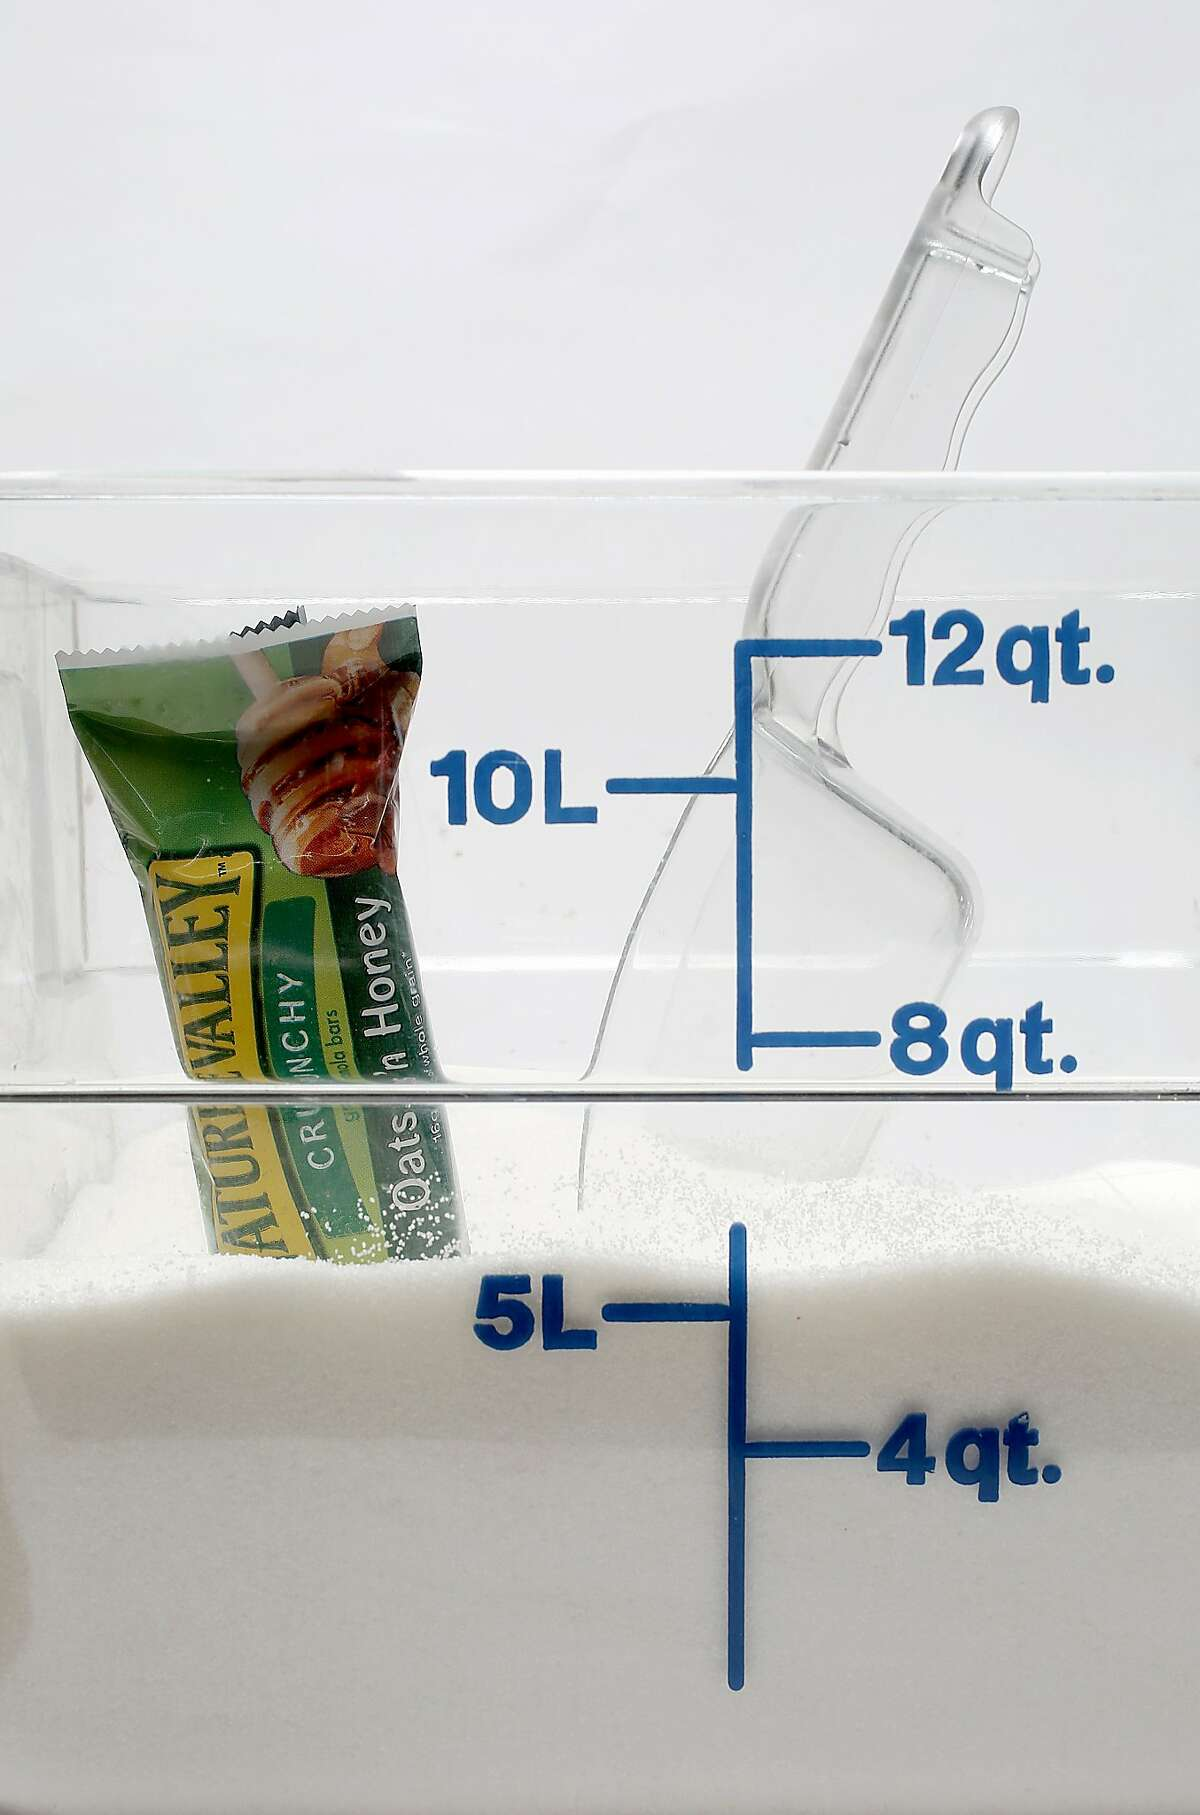 You'll consume 20 cups of added sugar if you eat a serving of Nature Valley Oats and Honey Crunchy Granola Bars every day for a year.